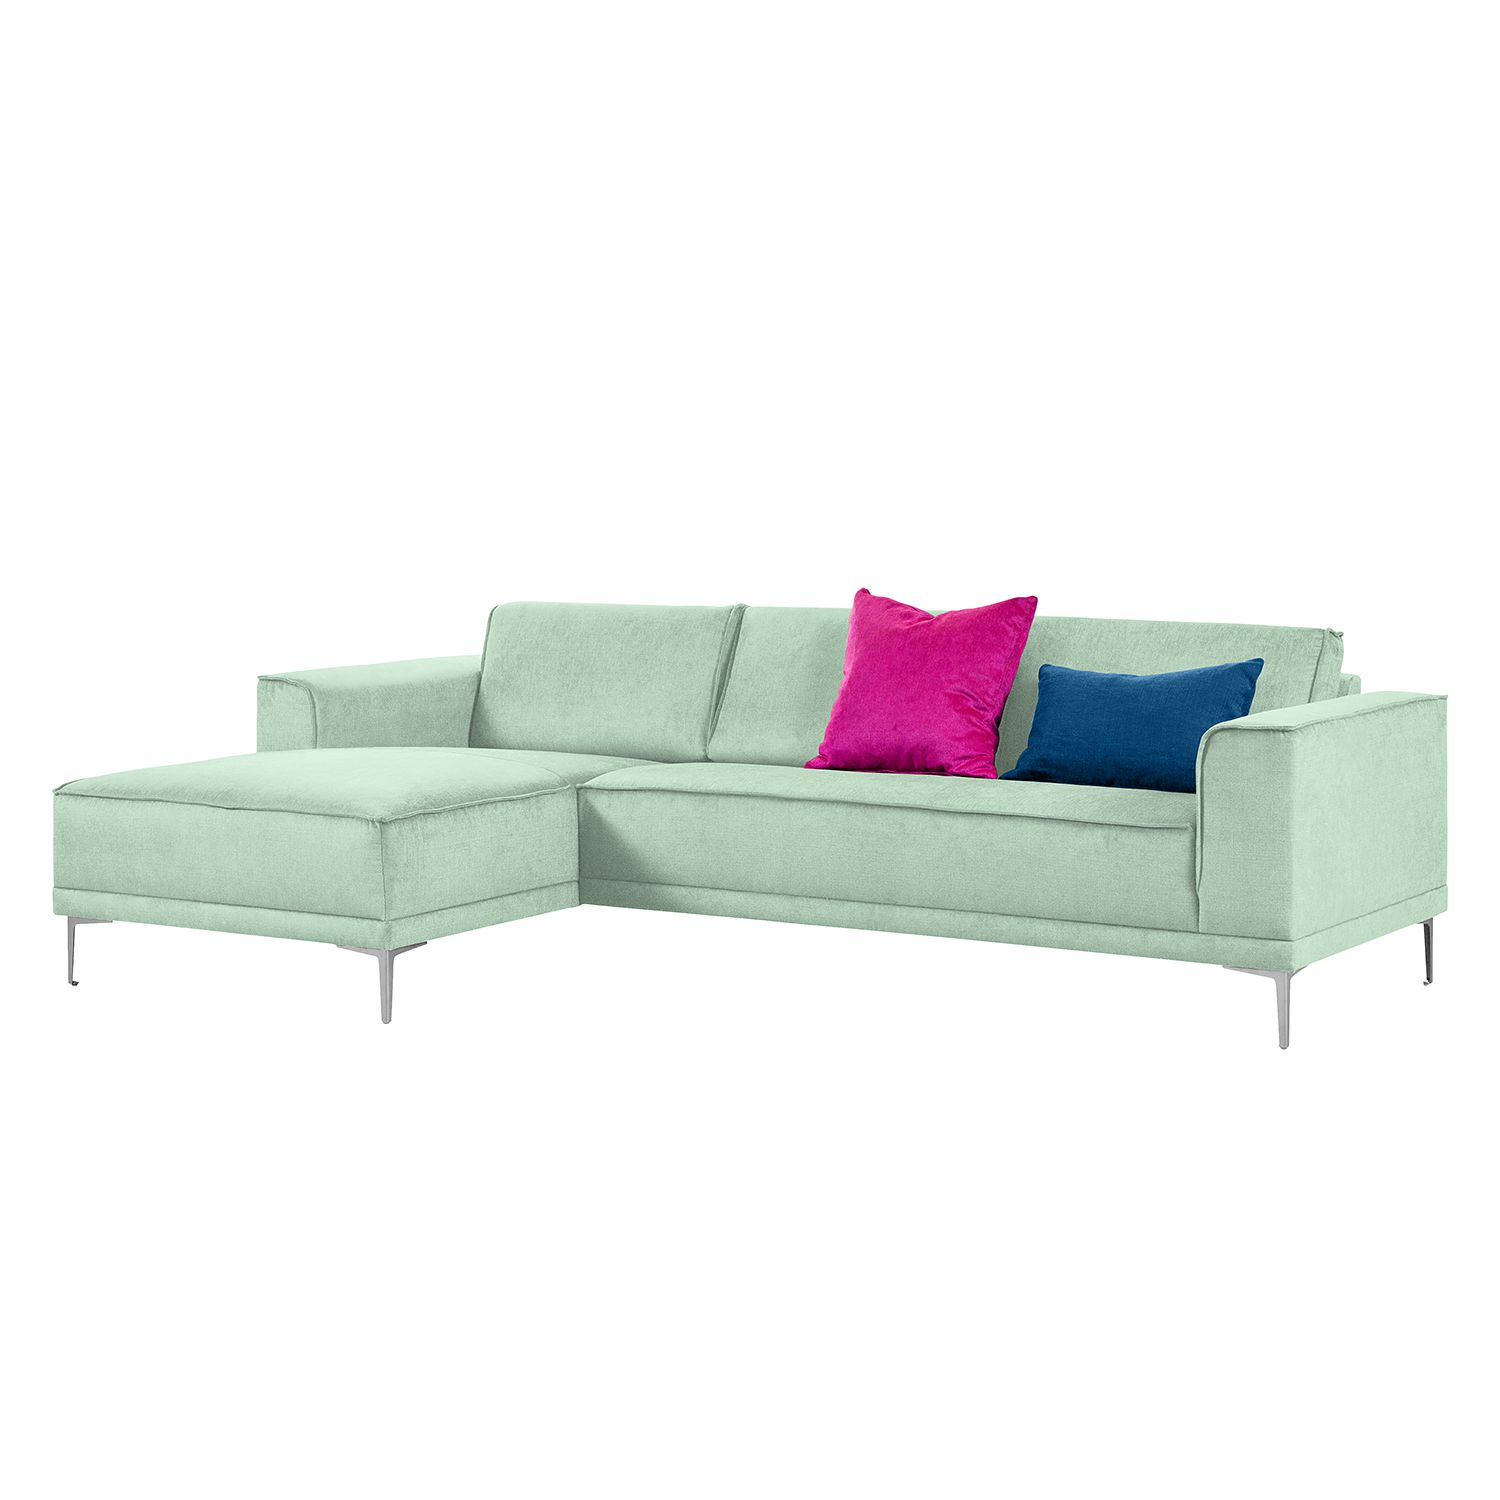 Ecksofa Grapefield - Webstoff - Longchair/Ottomane davorstehend links - Mint, Says Who